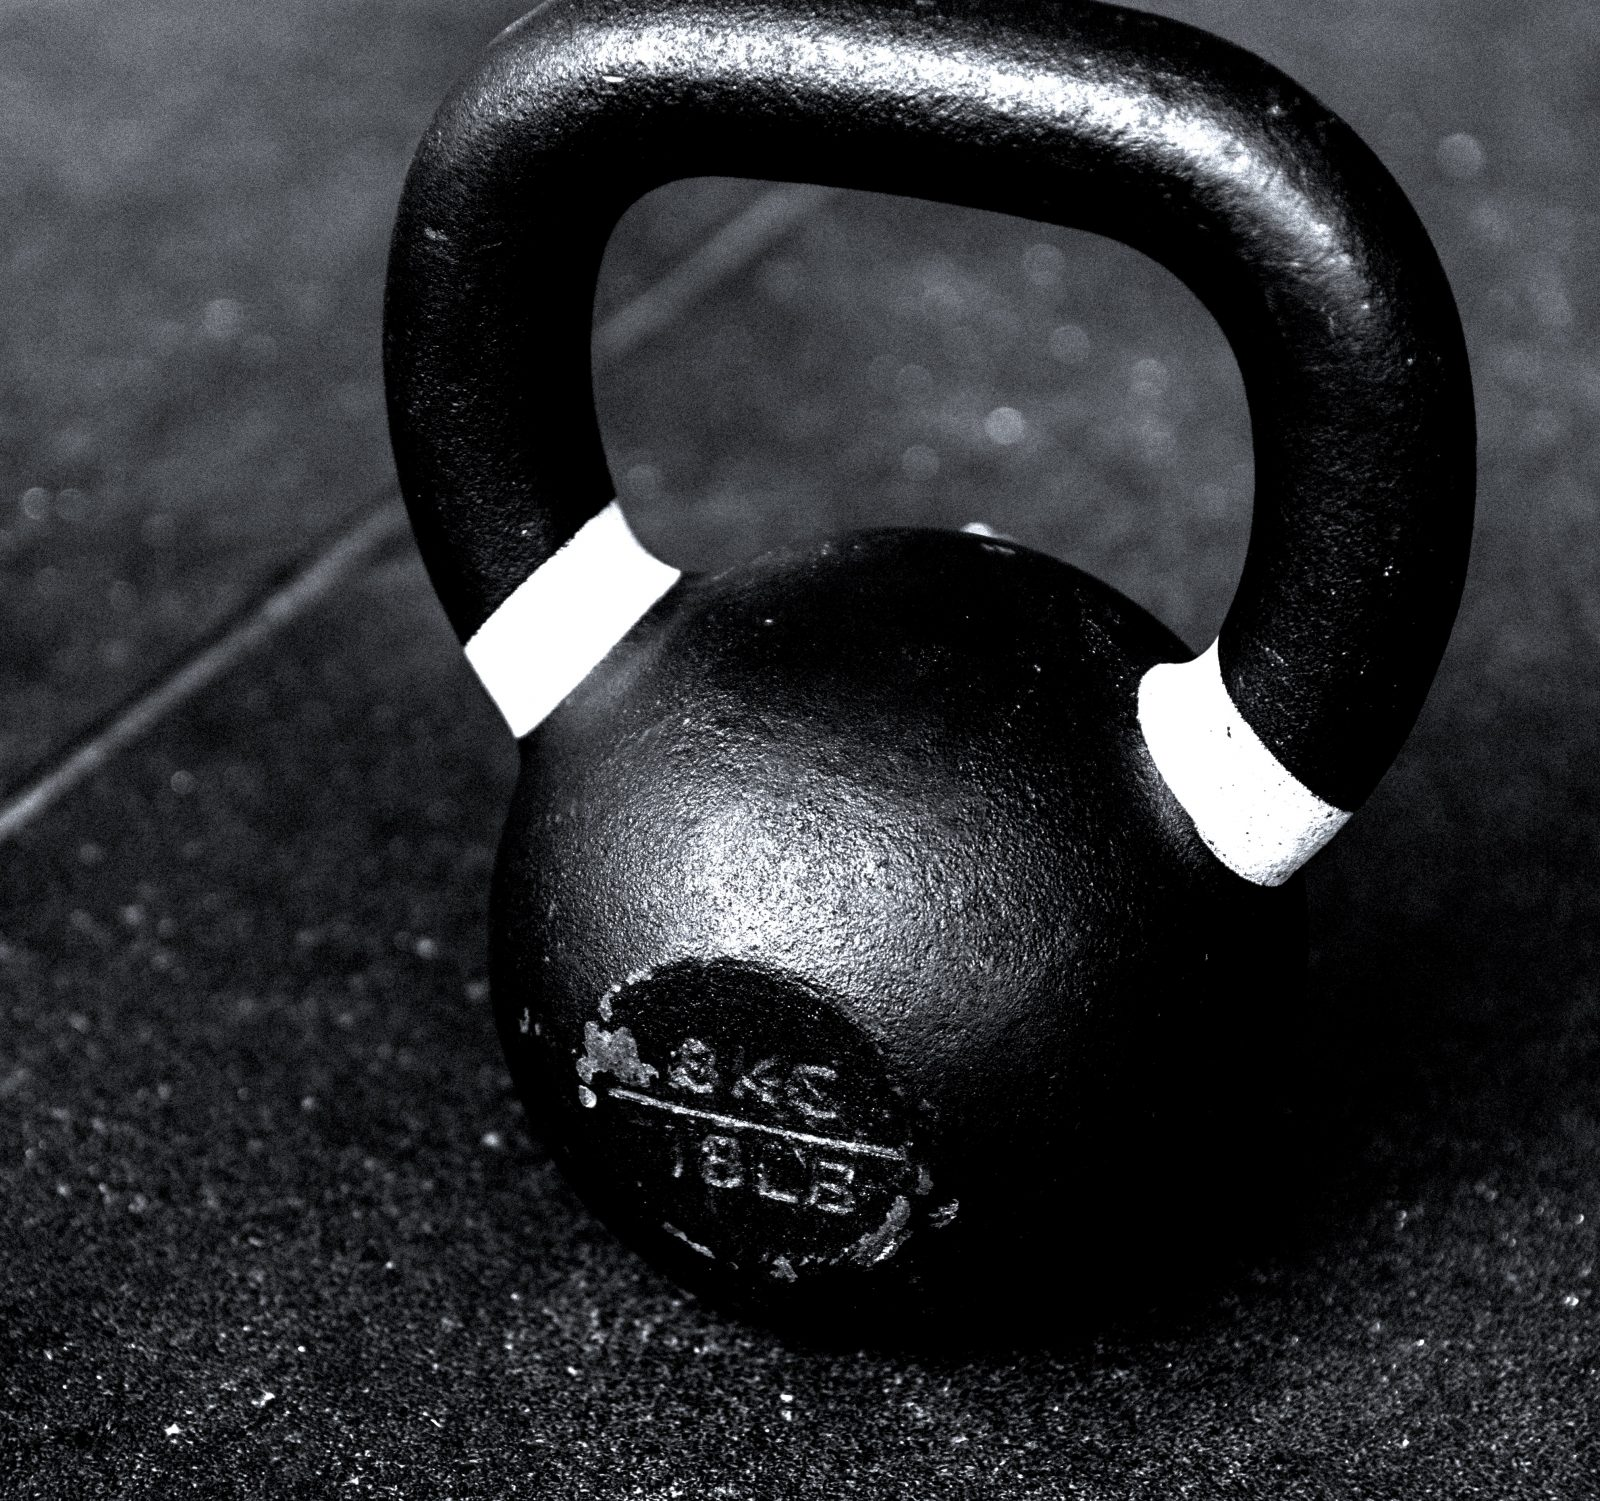 kettle bell in black and white